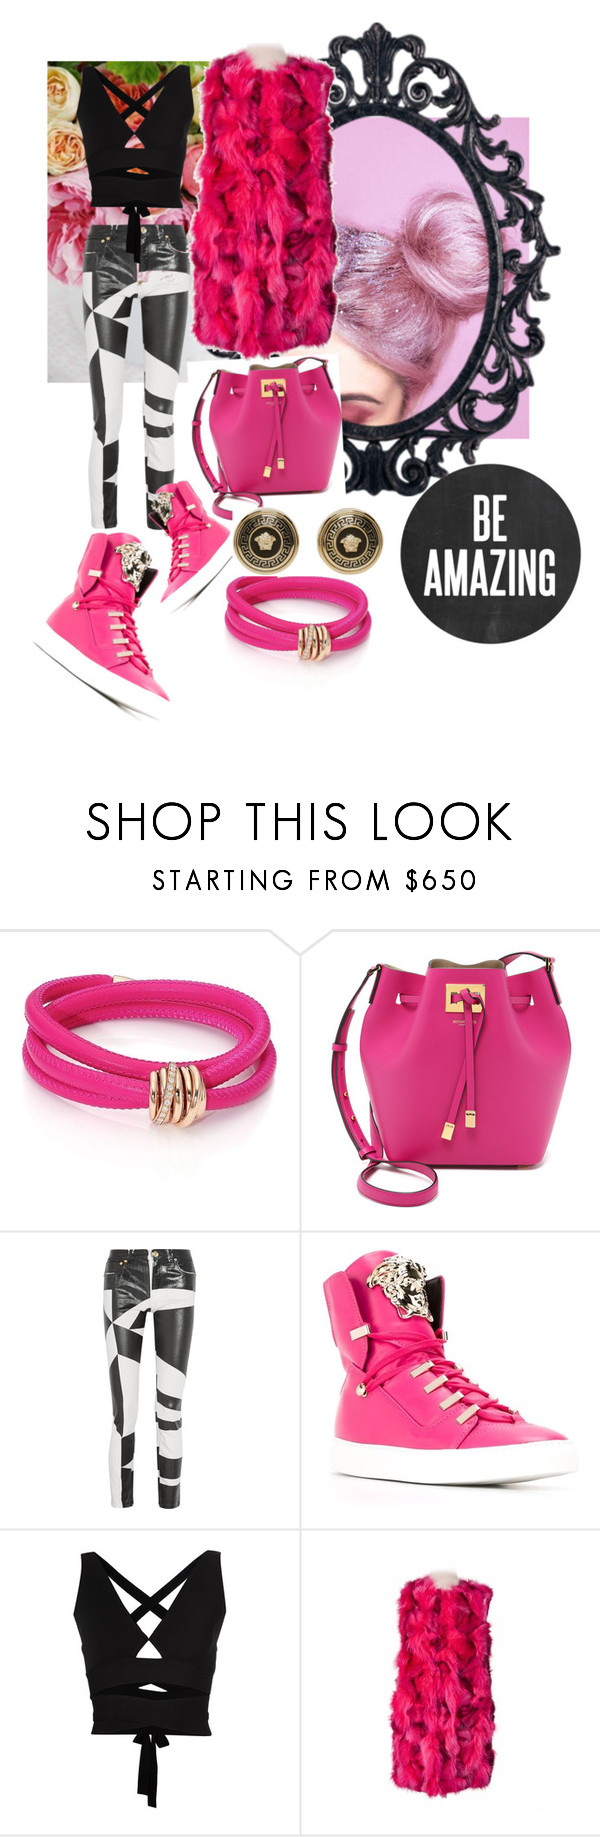 """Pink details"" by jglammy ❤ liked on Polyvore featuring Michele, de Grisogono, Michael Kors, Versus, Versace, Proenza Schouler, women's clothing, women, female and woman"